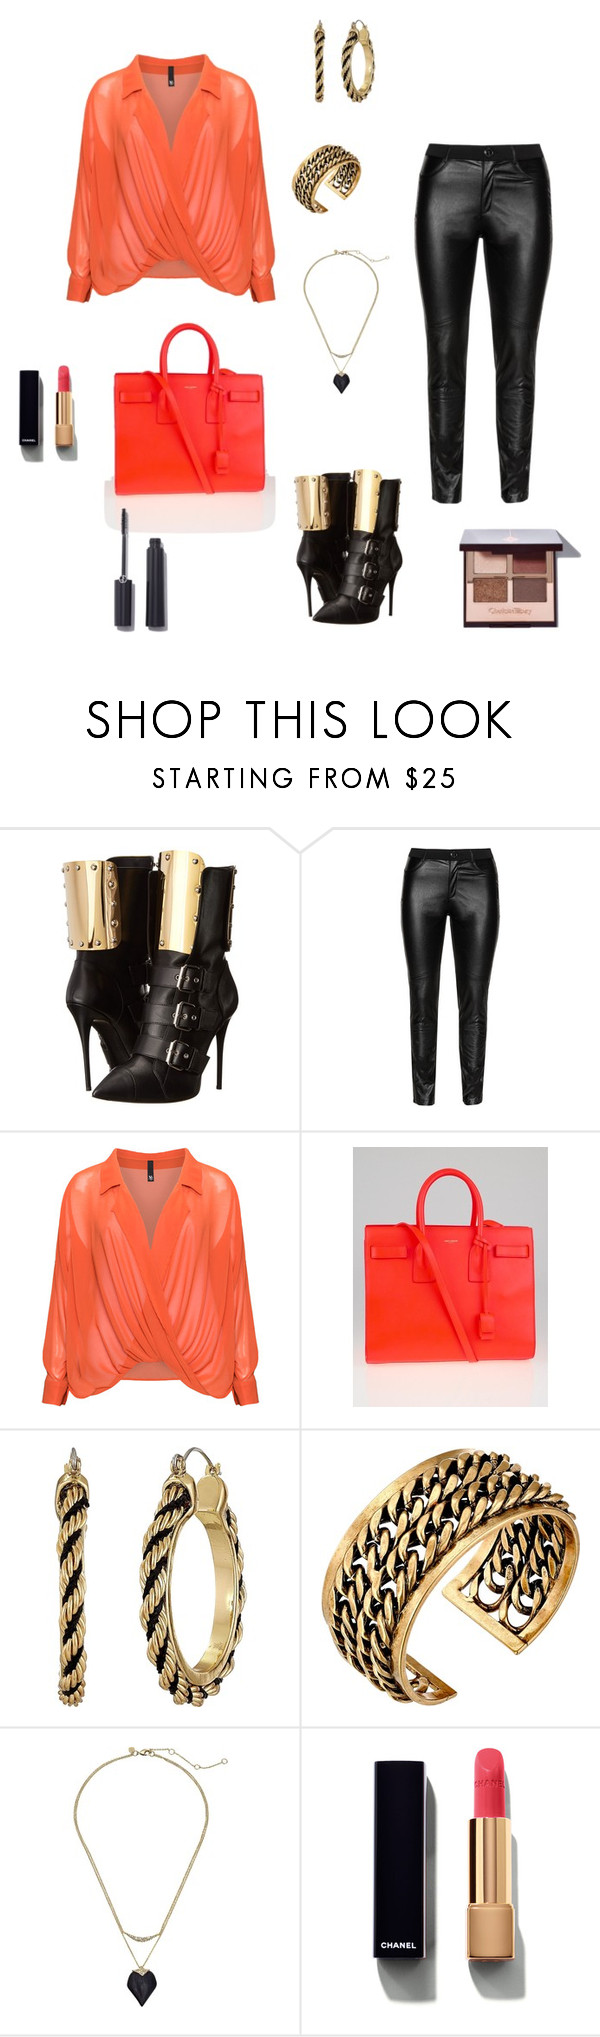 """""""Untitled #811"""" by denaye-mo ❤ liked on Polyvore featuring Giuseppe Zanotti, DNY, Manon Baptiste, Yves Saint Laurent, GUESS, Lucky Brand, Alexis Bittar, Chanel and Giorgio Armani"""